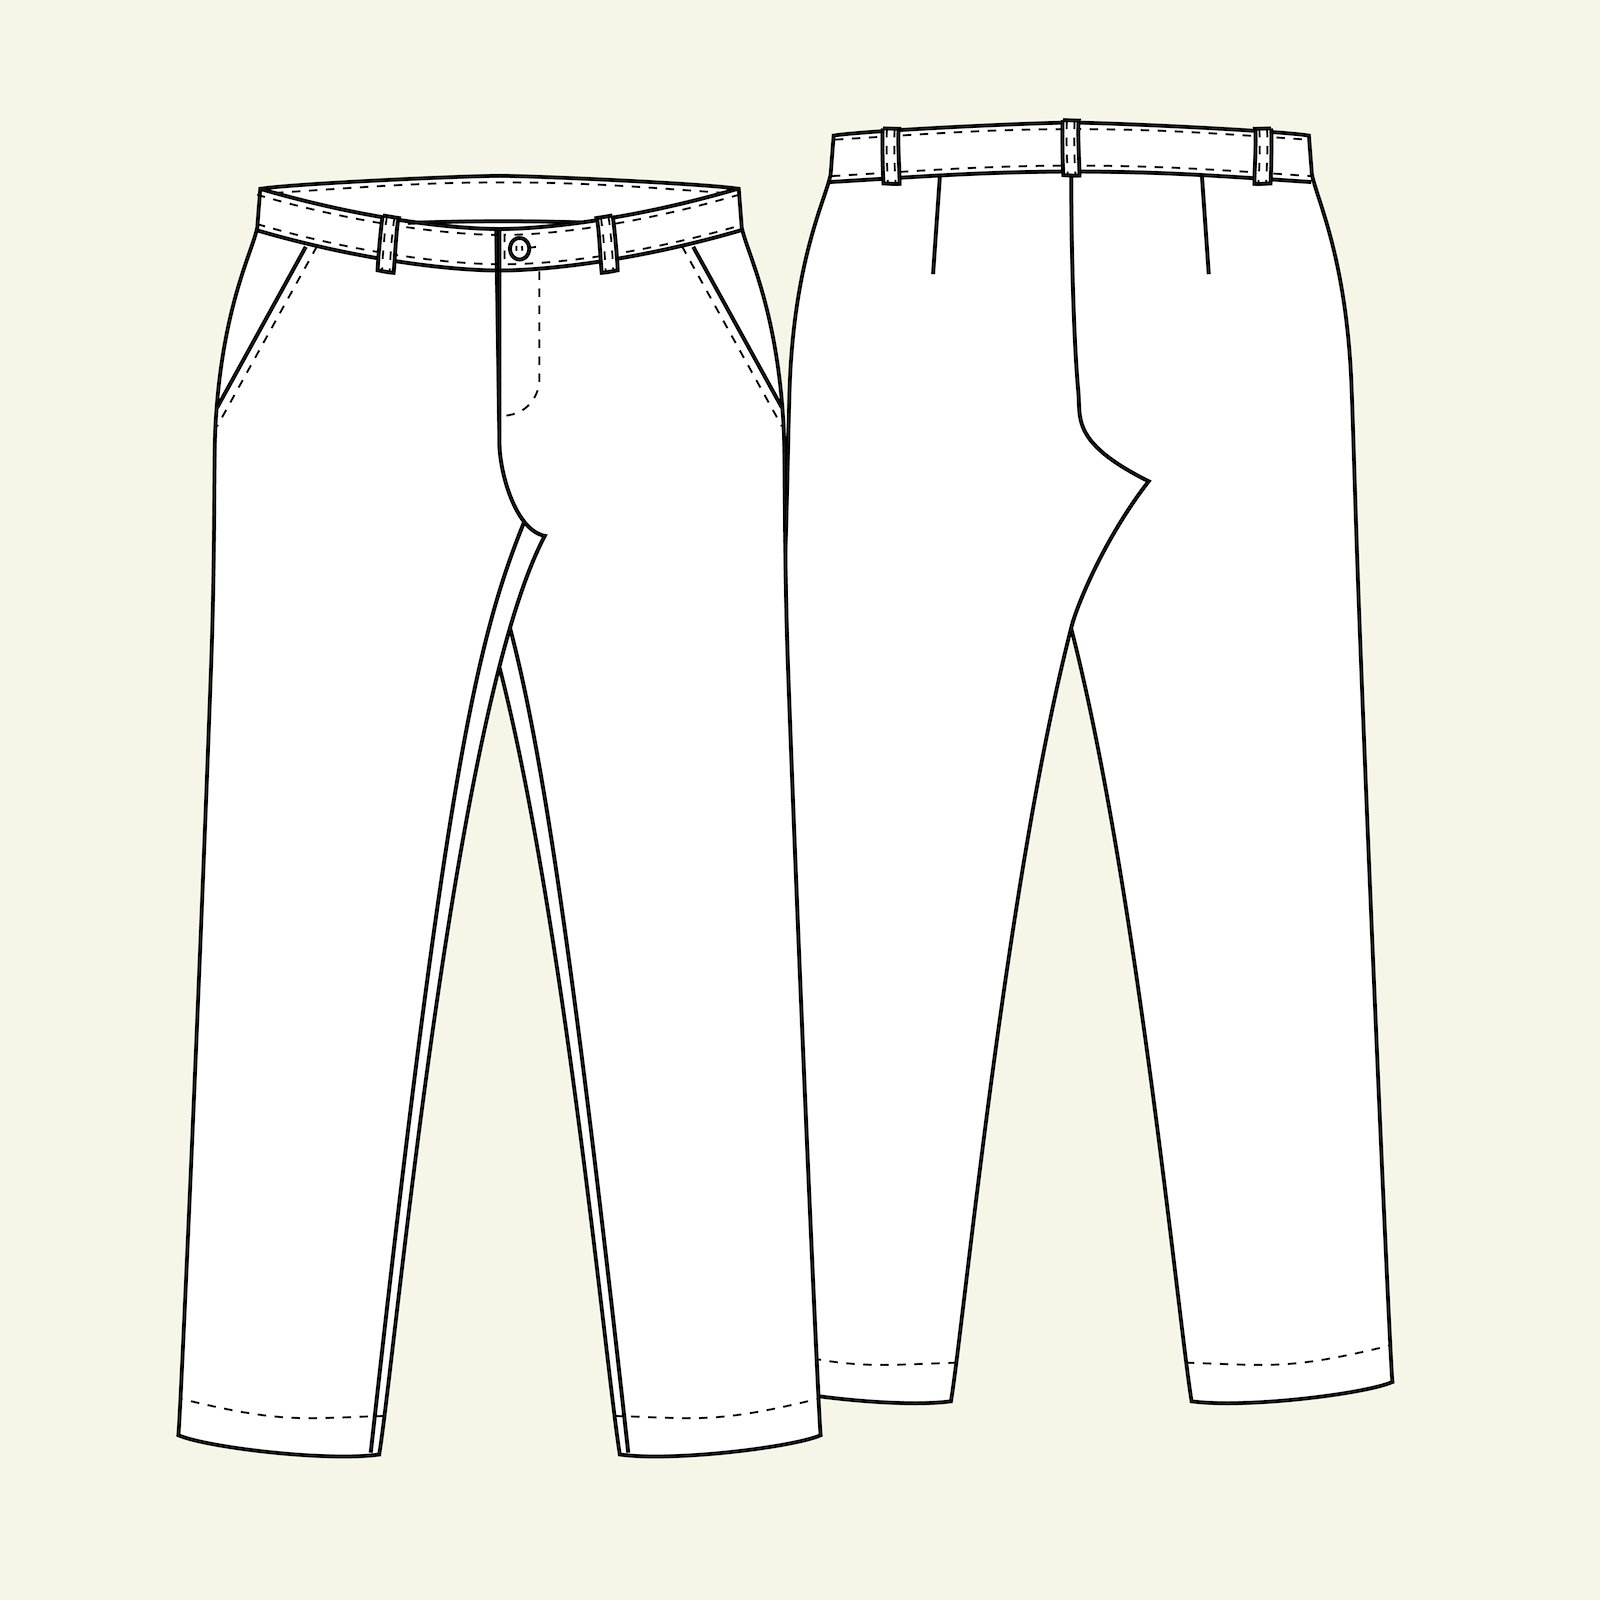 Trousers, 46/18 p20033_pack